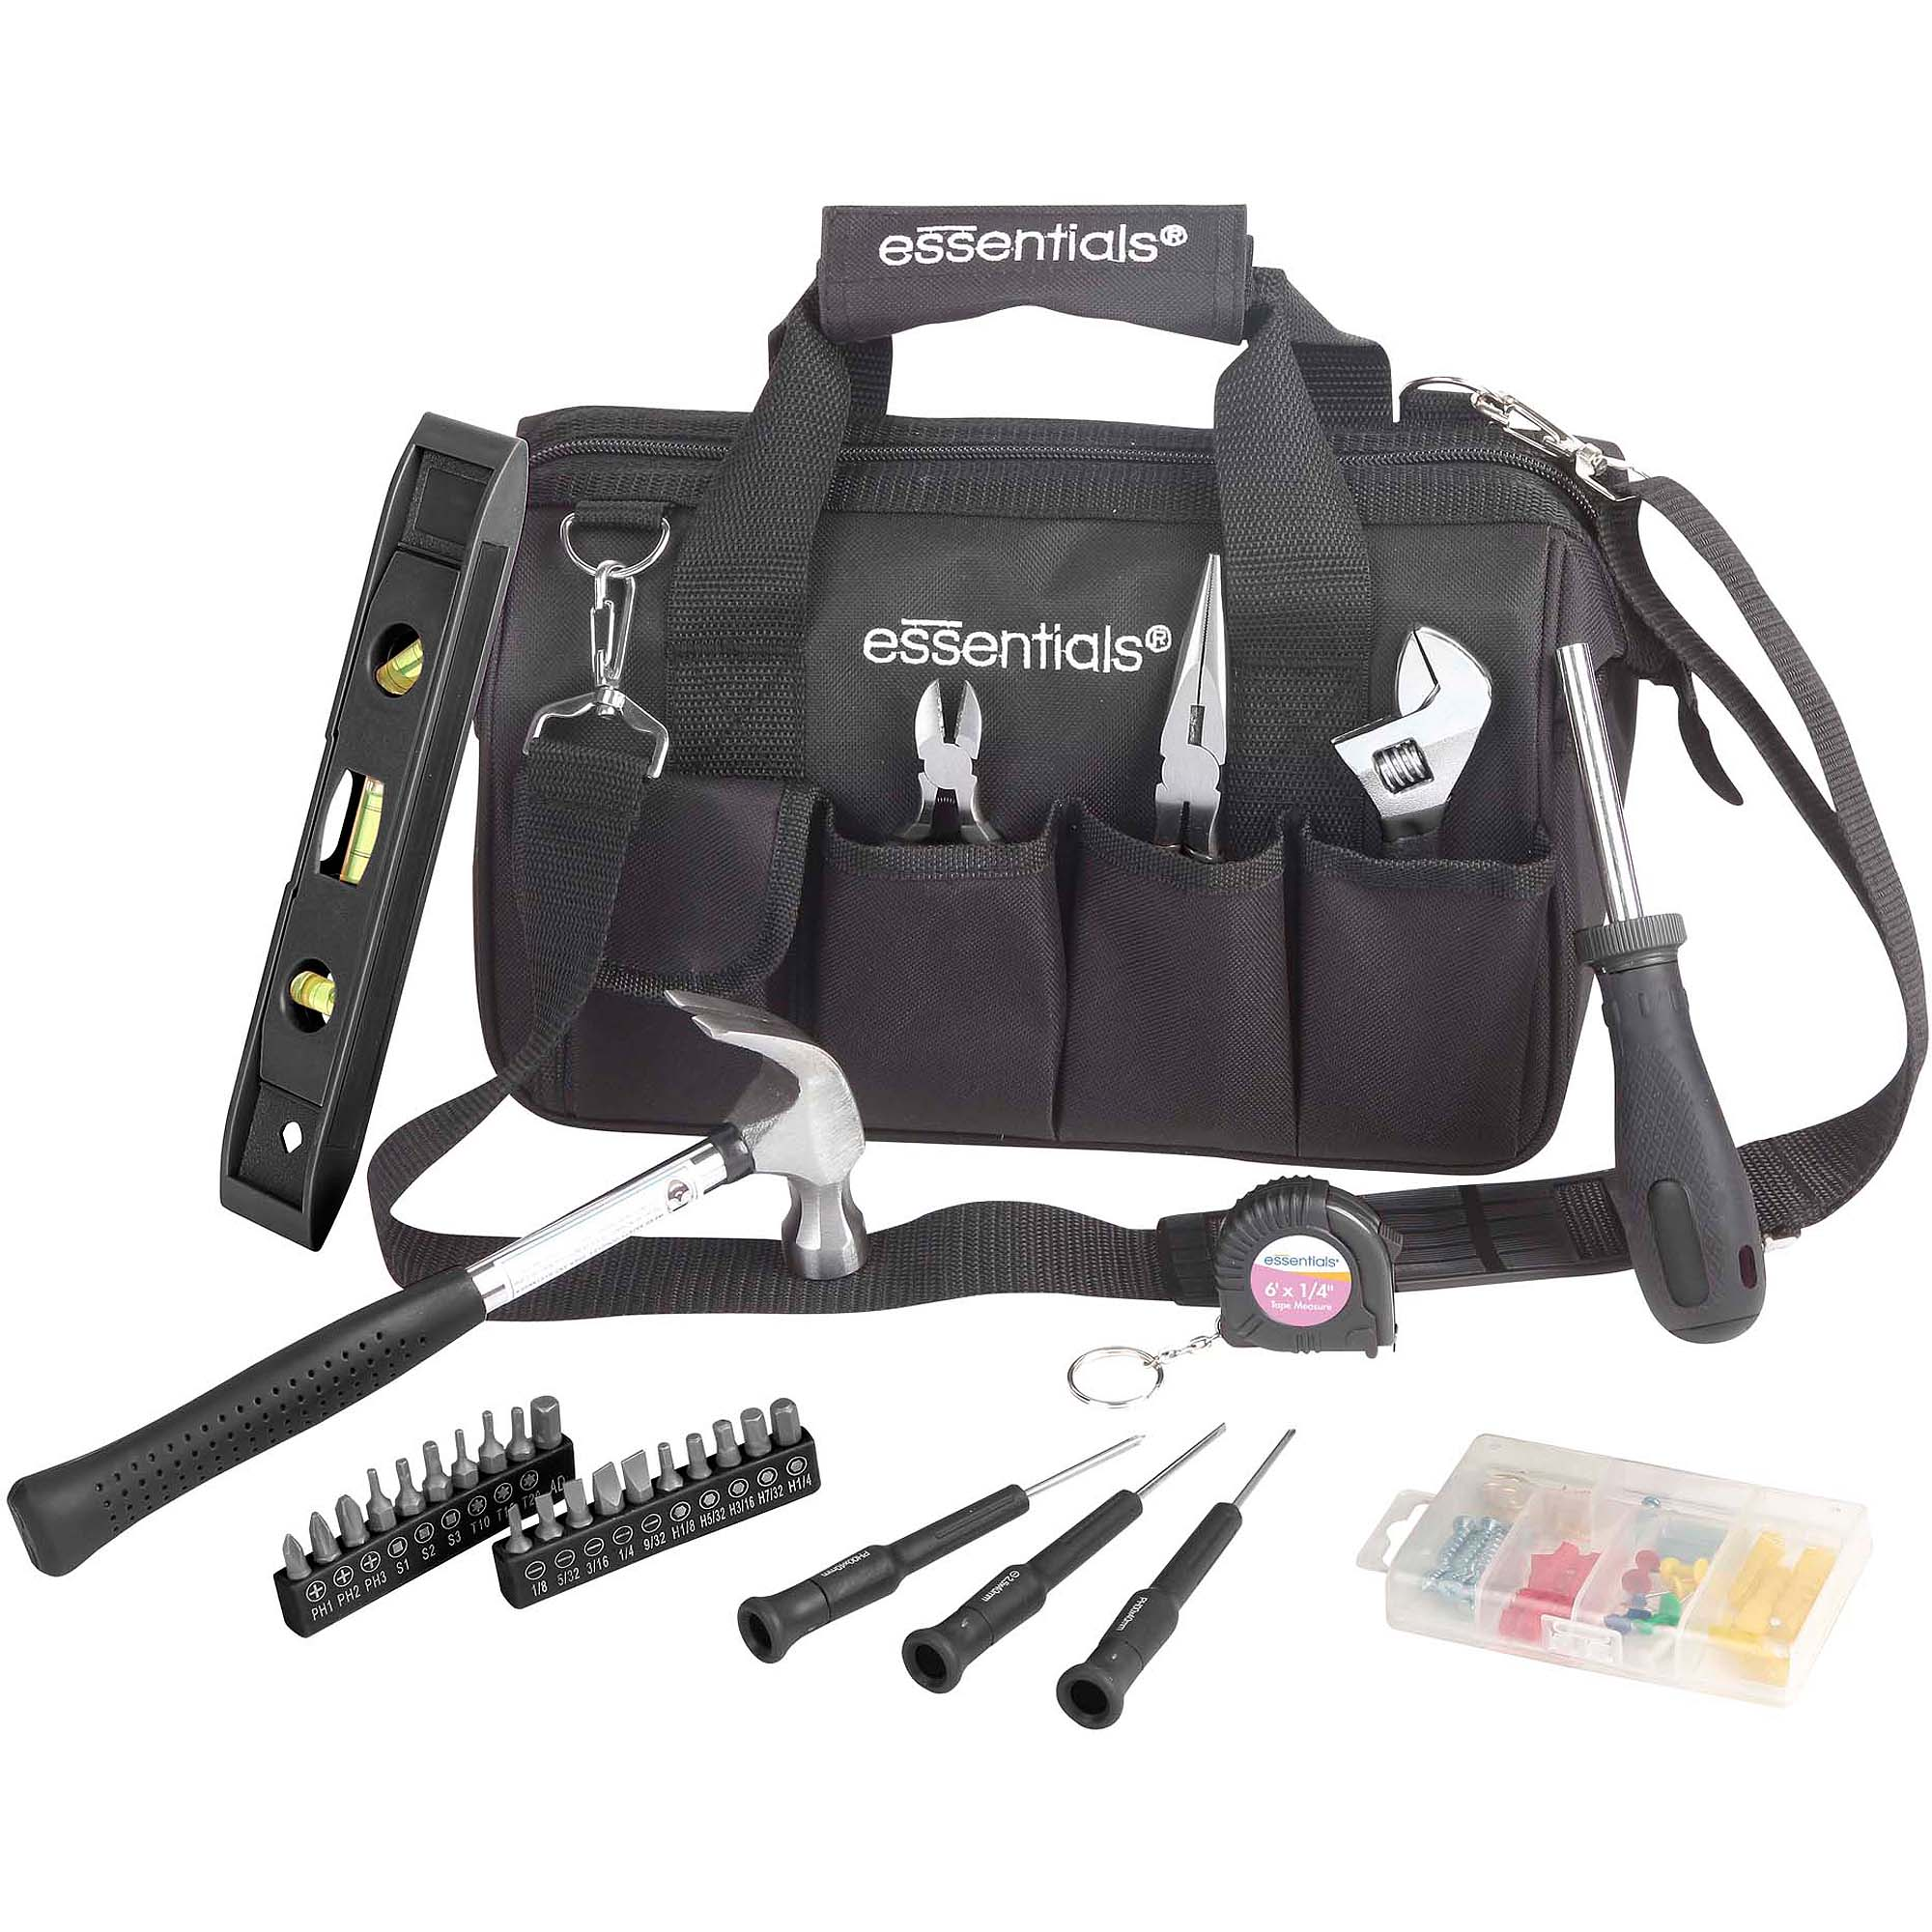 Essentials Tool Set with Zip-Up Bag, 32-Piece, Black